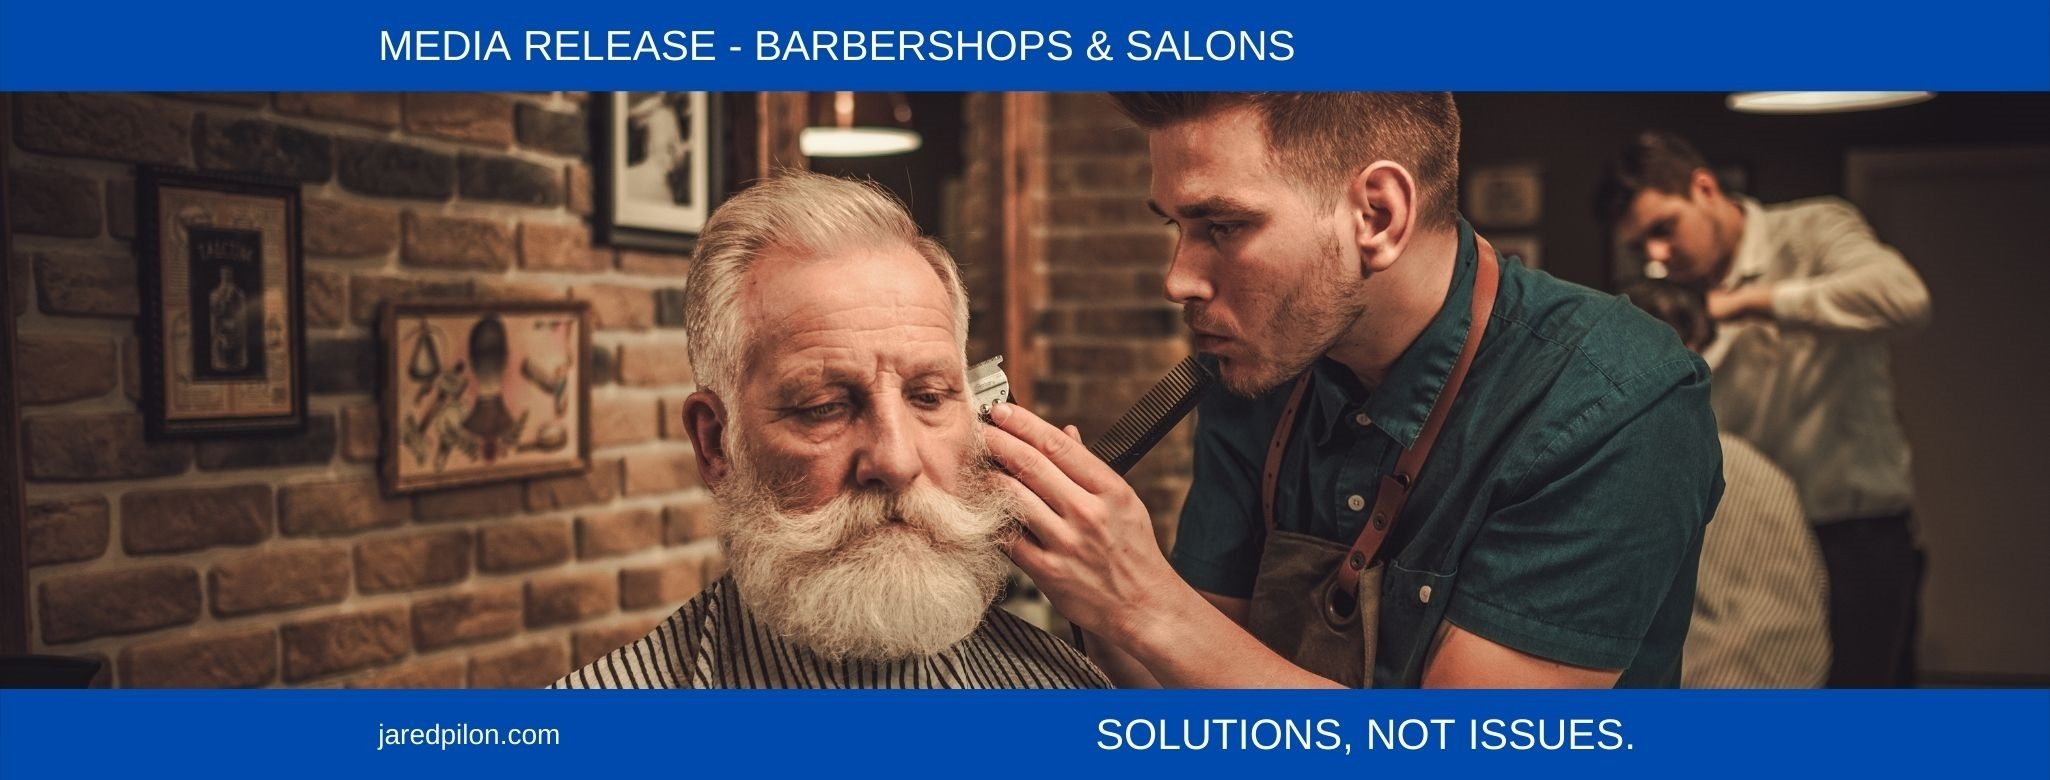 BARBERSHOPS & SALONS